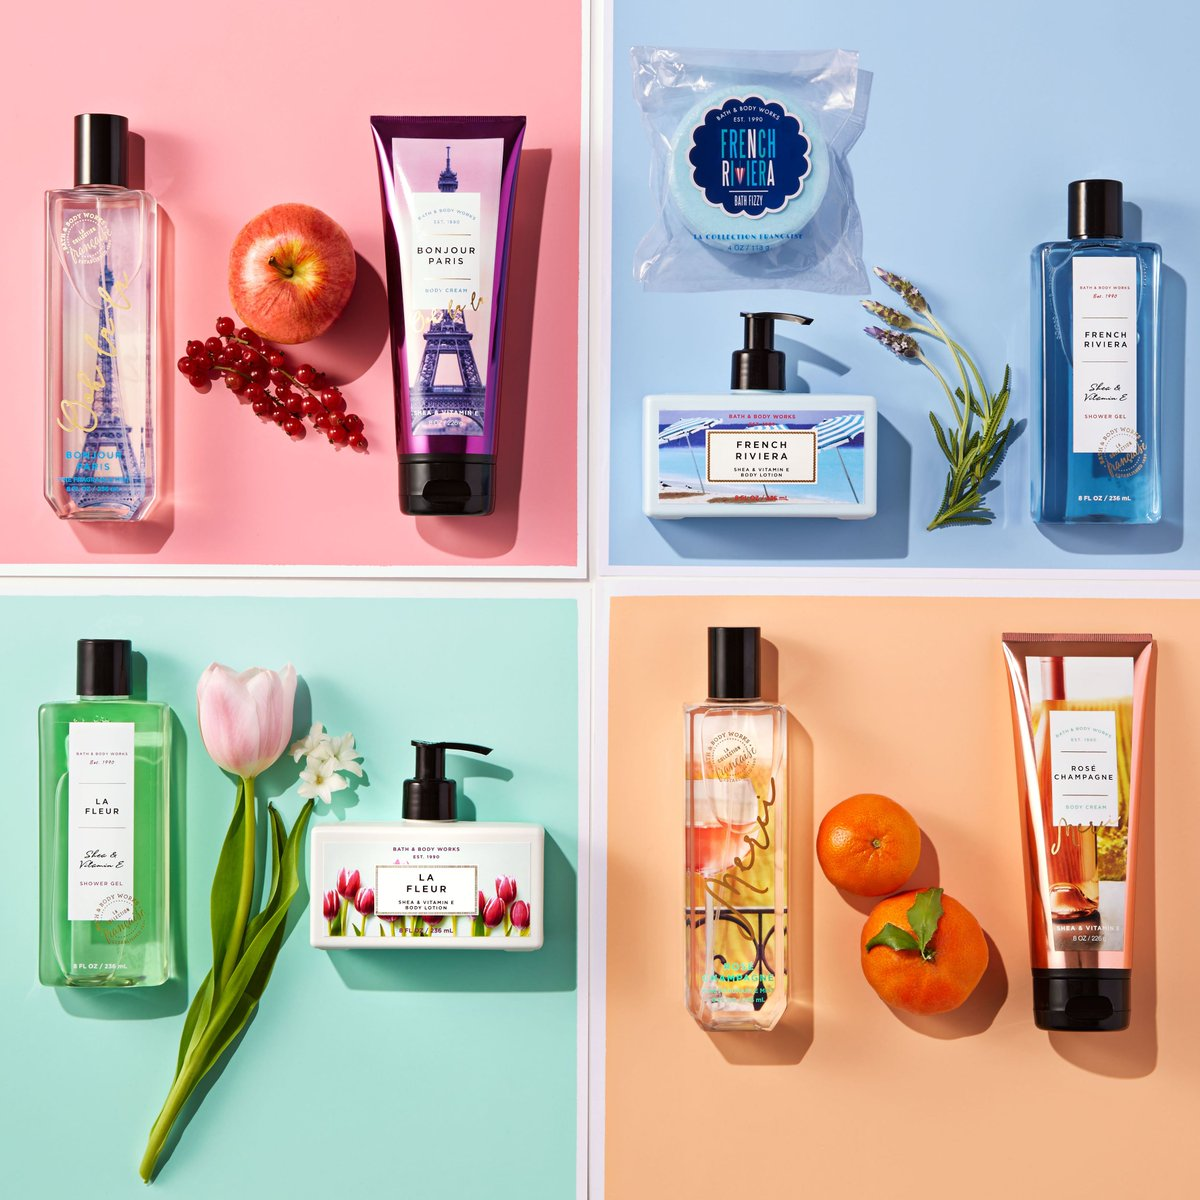 Bath body works bathbodyworks twitter for Bathroom body works